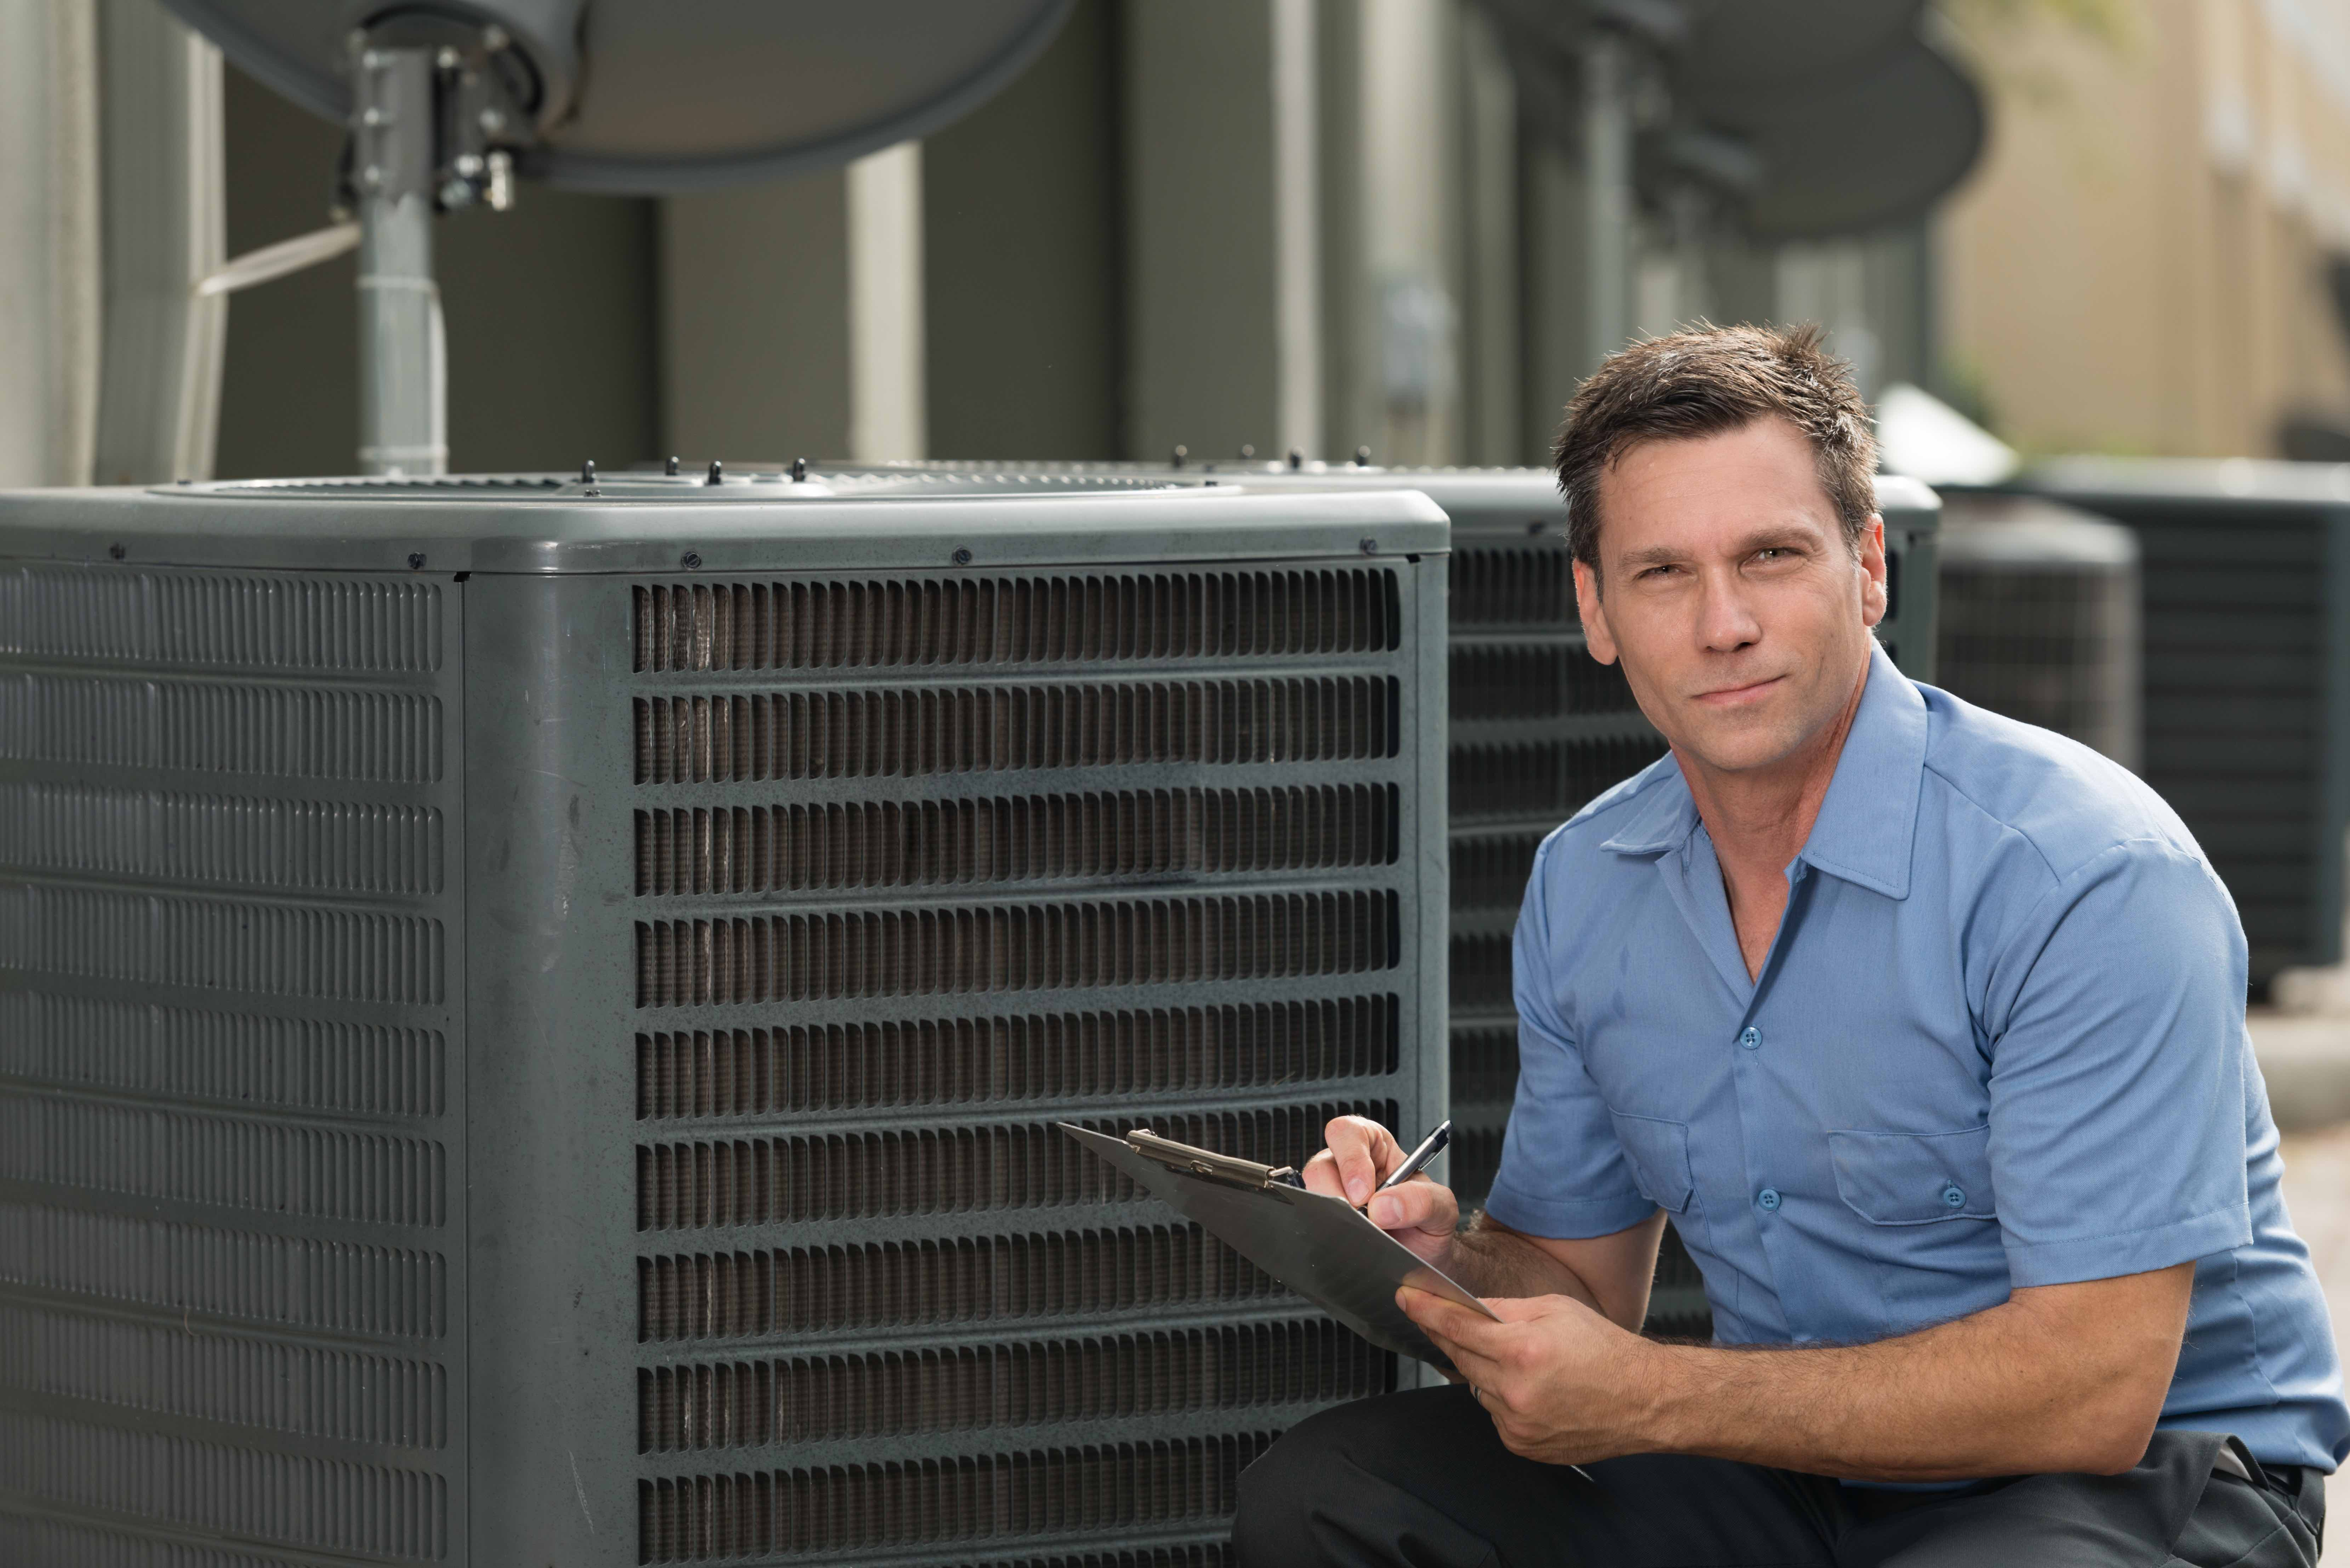 HVAC Services Installs and Tucson AC Installs at Value Pricing! Top Brands with 7 to 10- year Warranties. Call energy Source today at 520-272-9673. Professional and Experienced.